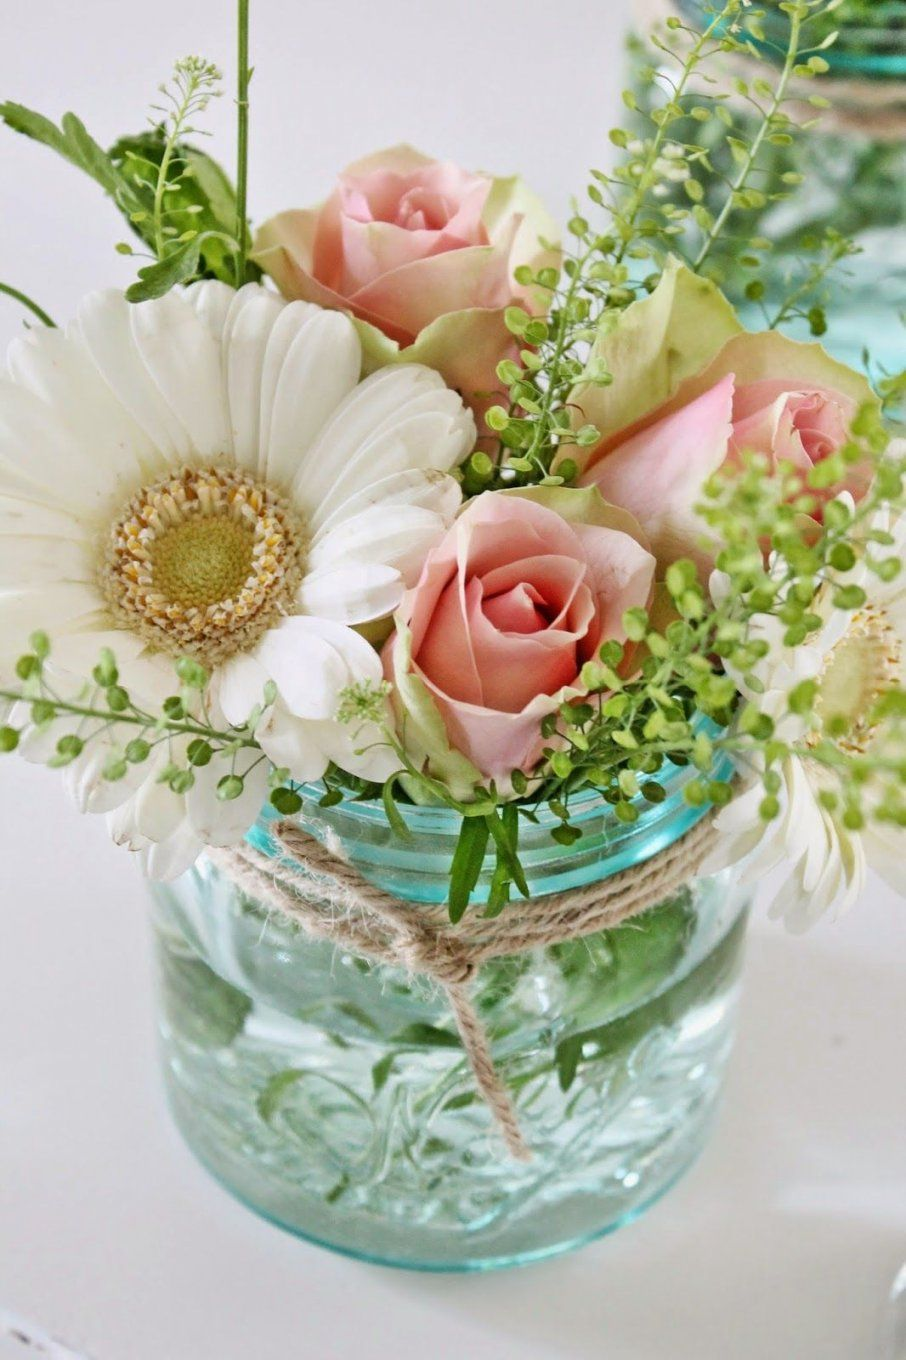 This Pretty Bouquet Made Of Pink Roses And White Daisies Makes A von Mason Jar Flower Vases Photo